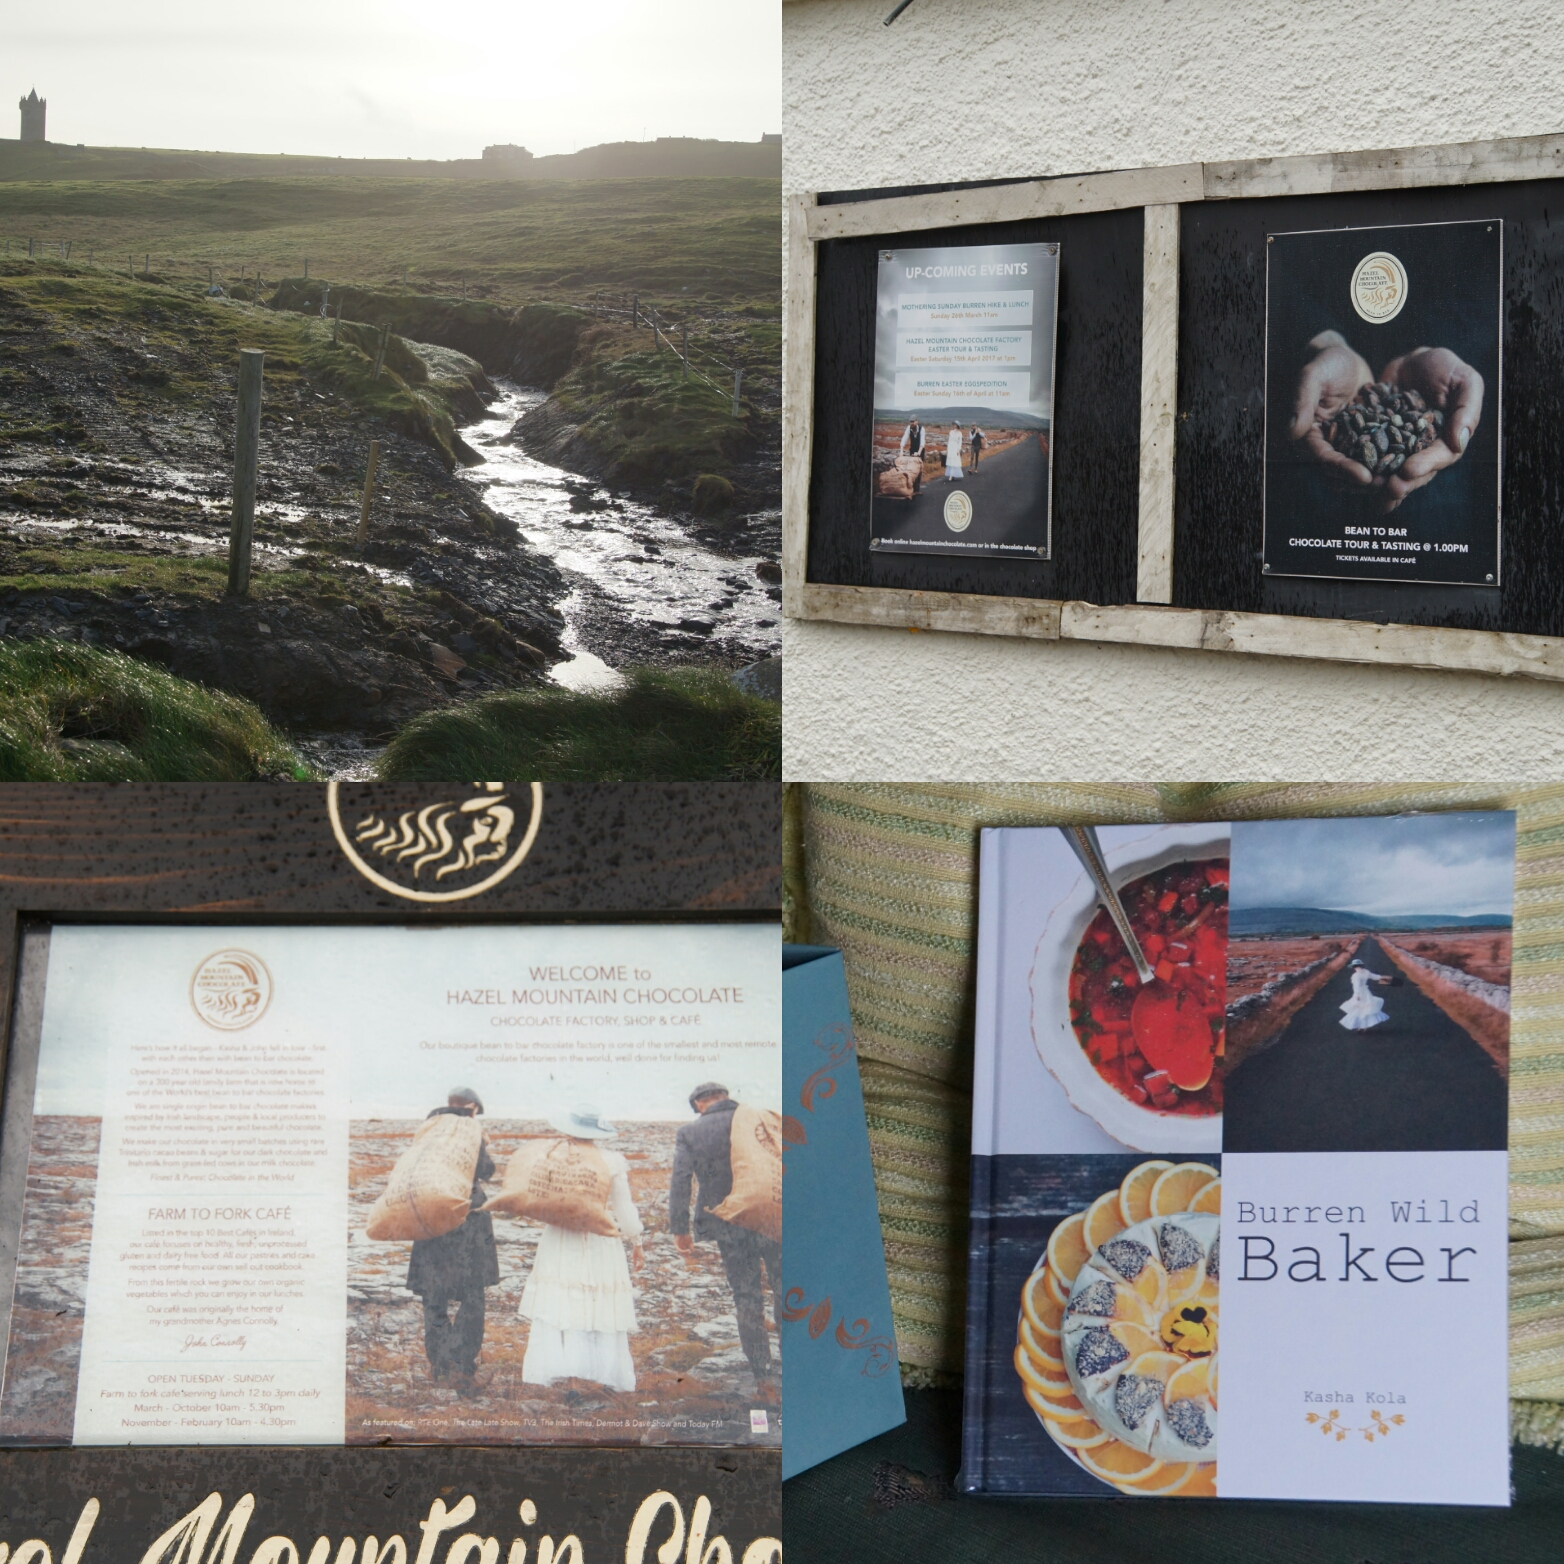 The Burren Wild Baker Collage iknmlo Hazel Mountain Chocolate Burren